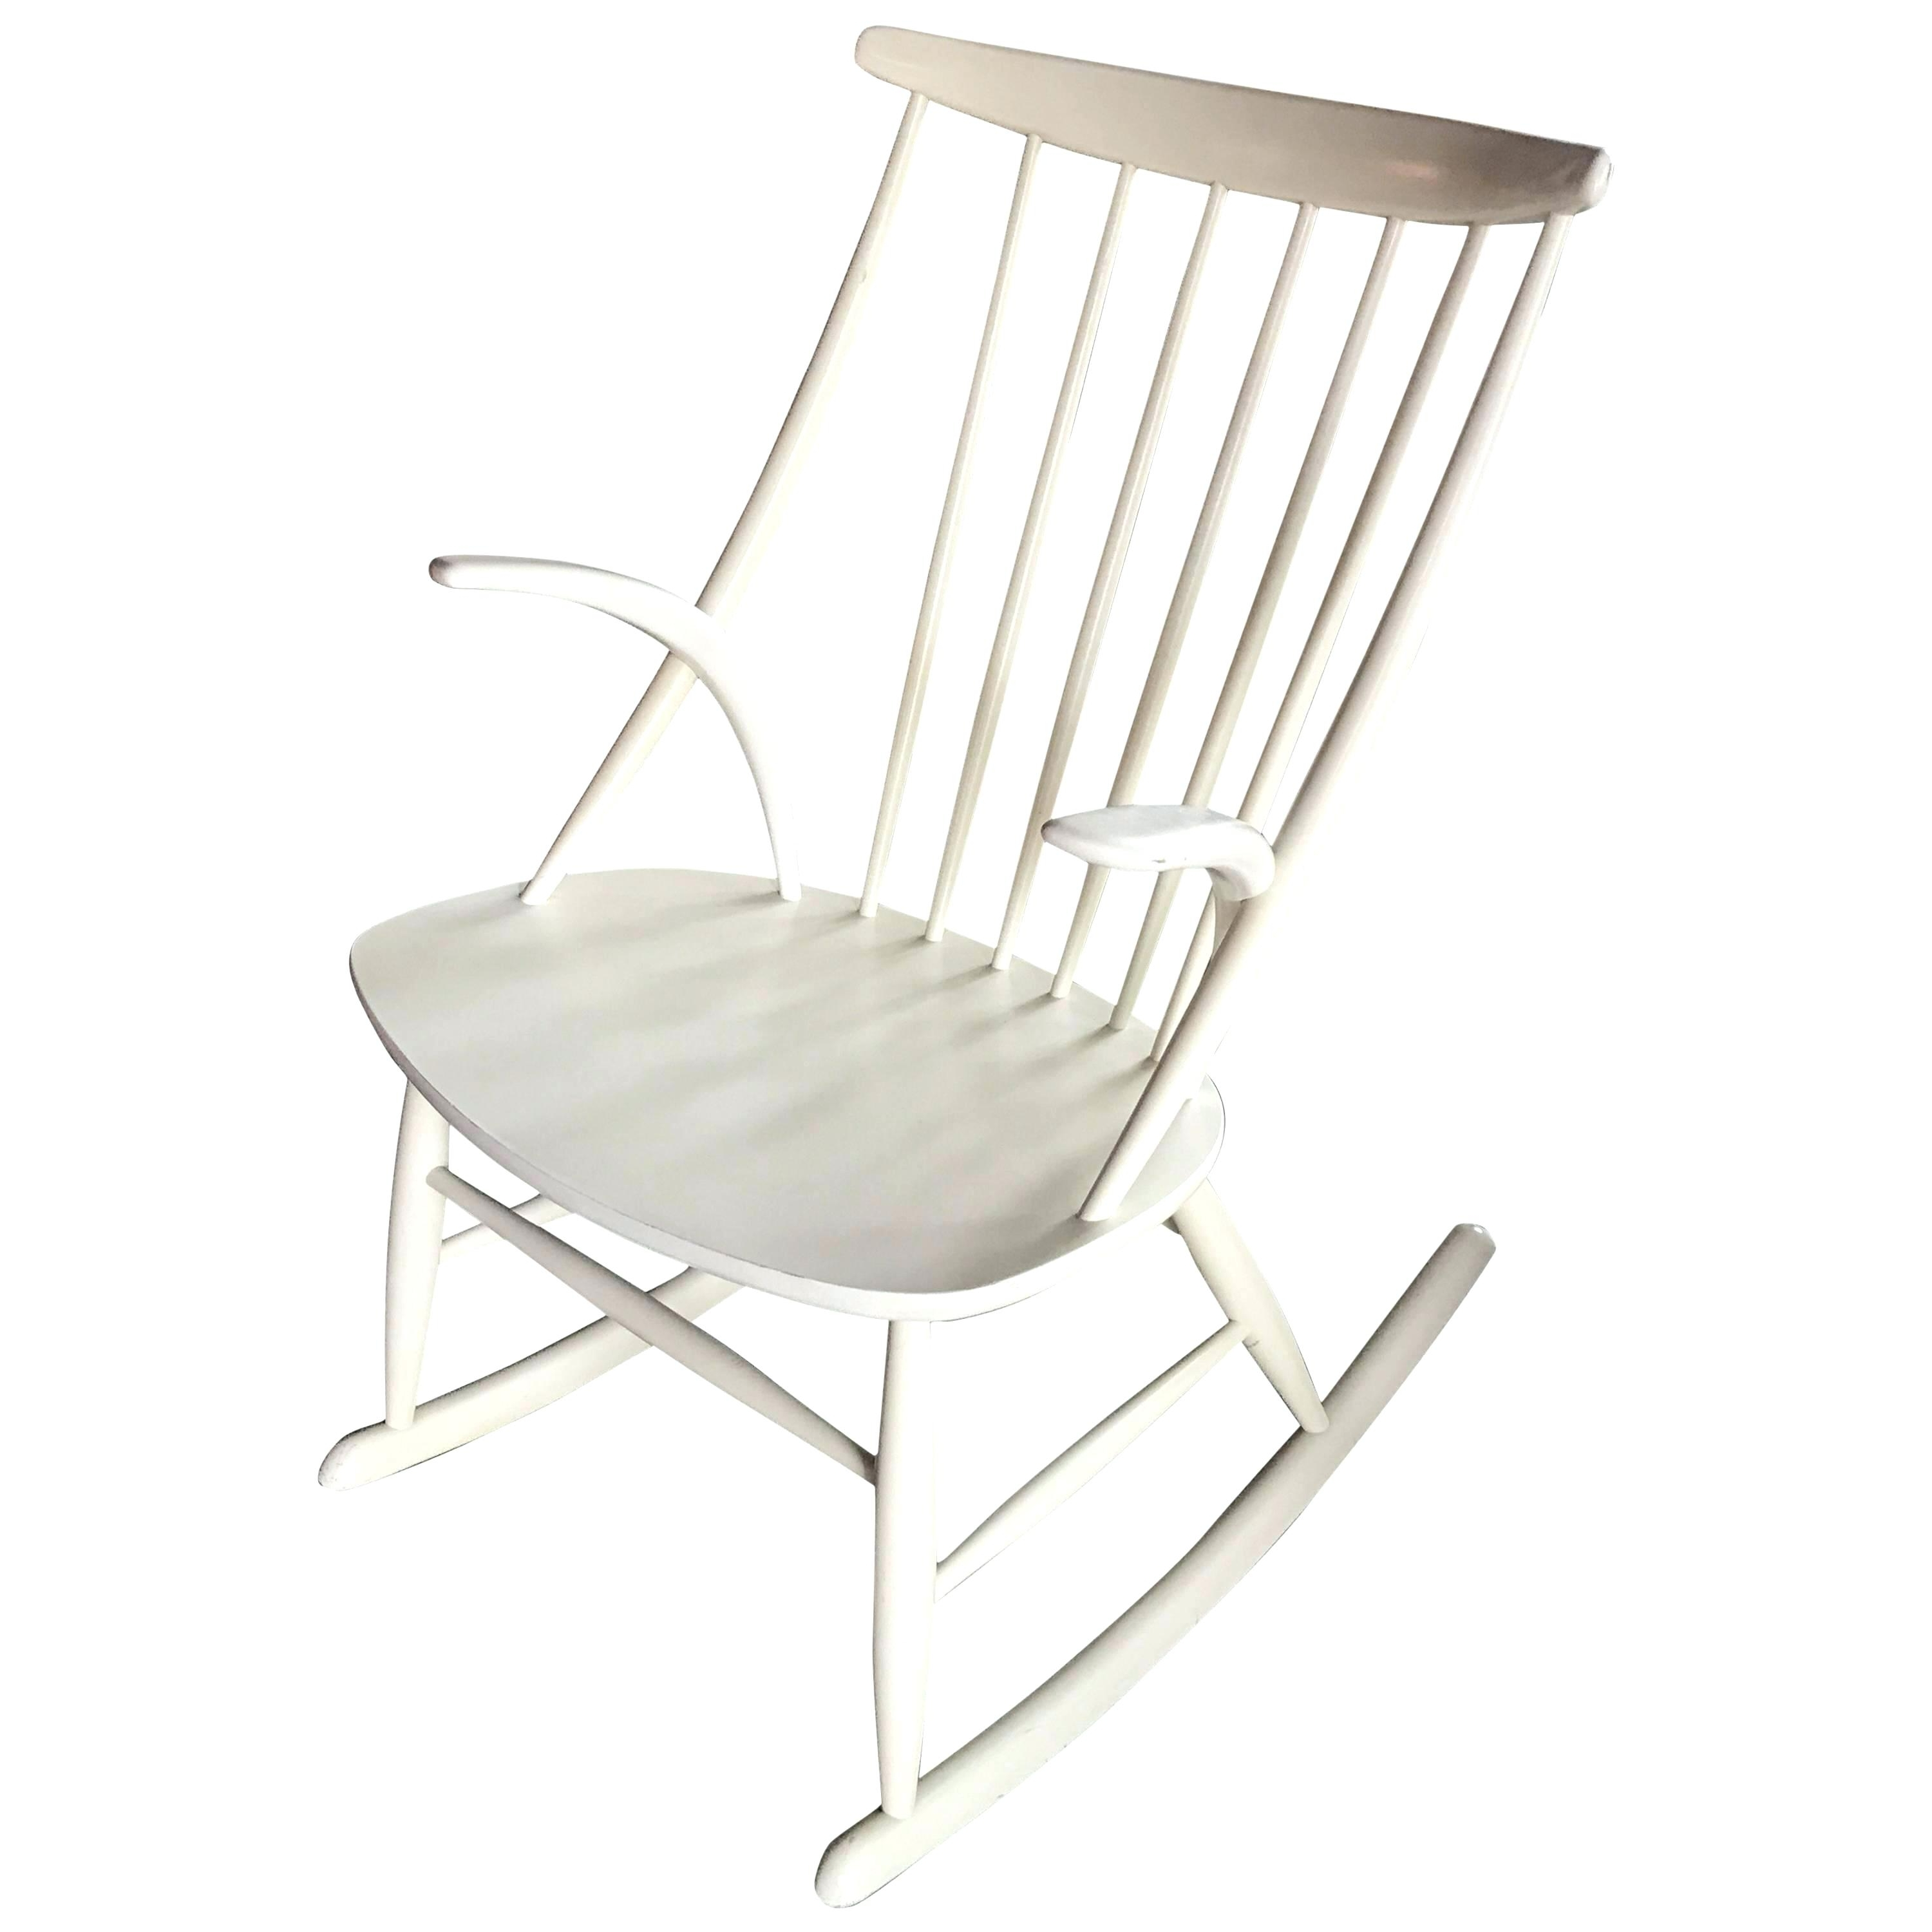 Most Current White Rocking Chair White Rocking Chair Rocker White Wooden Rocking For White Wicker Rocking Chair For Nursery (View 11 of 15)